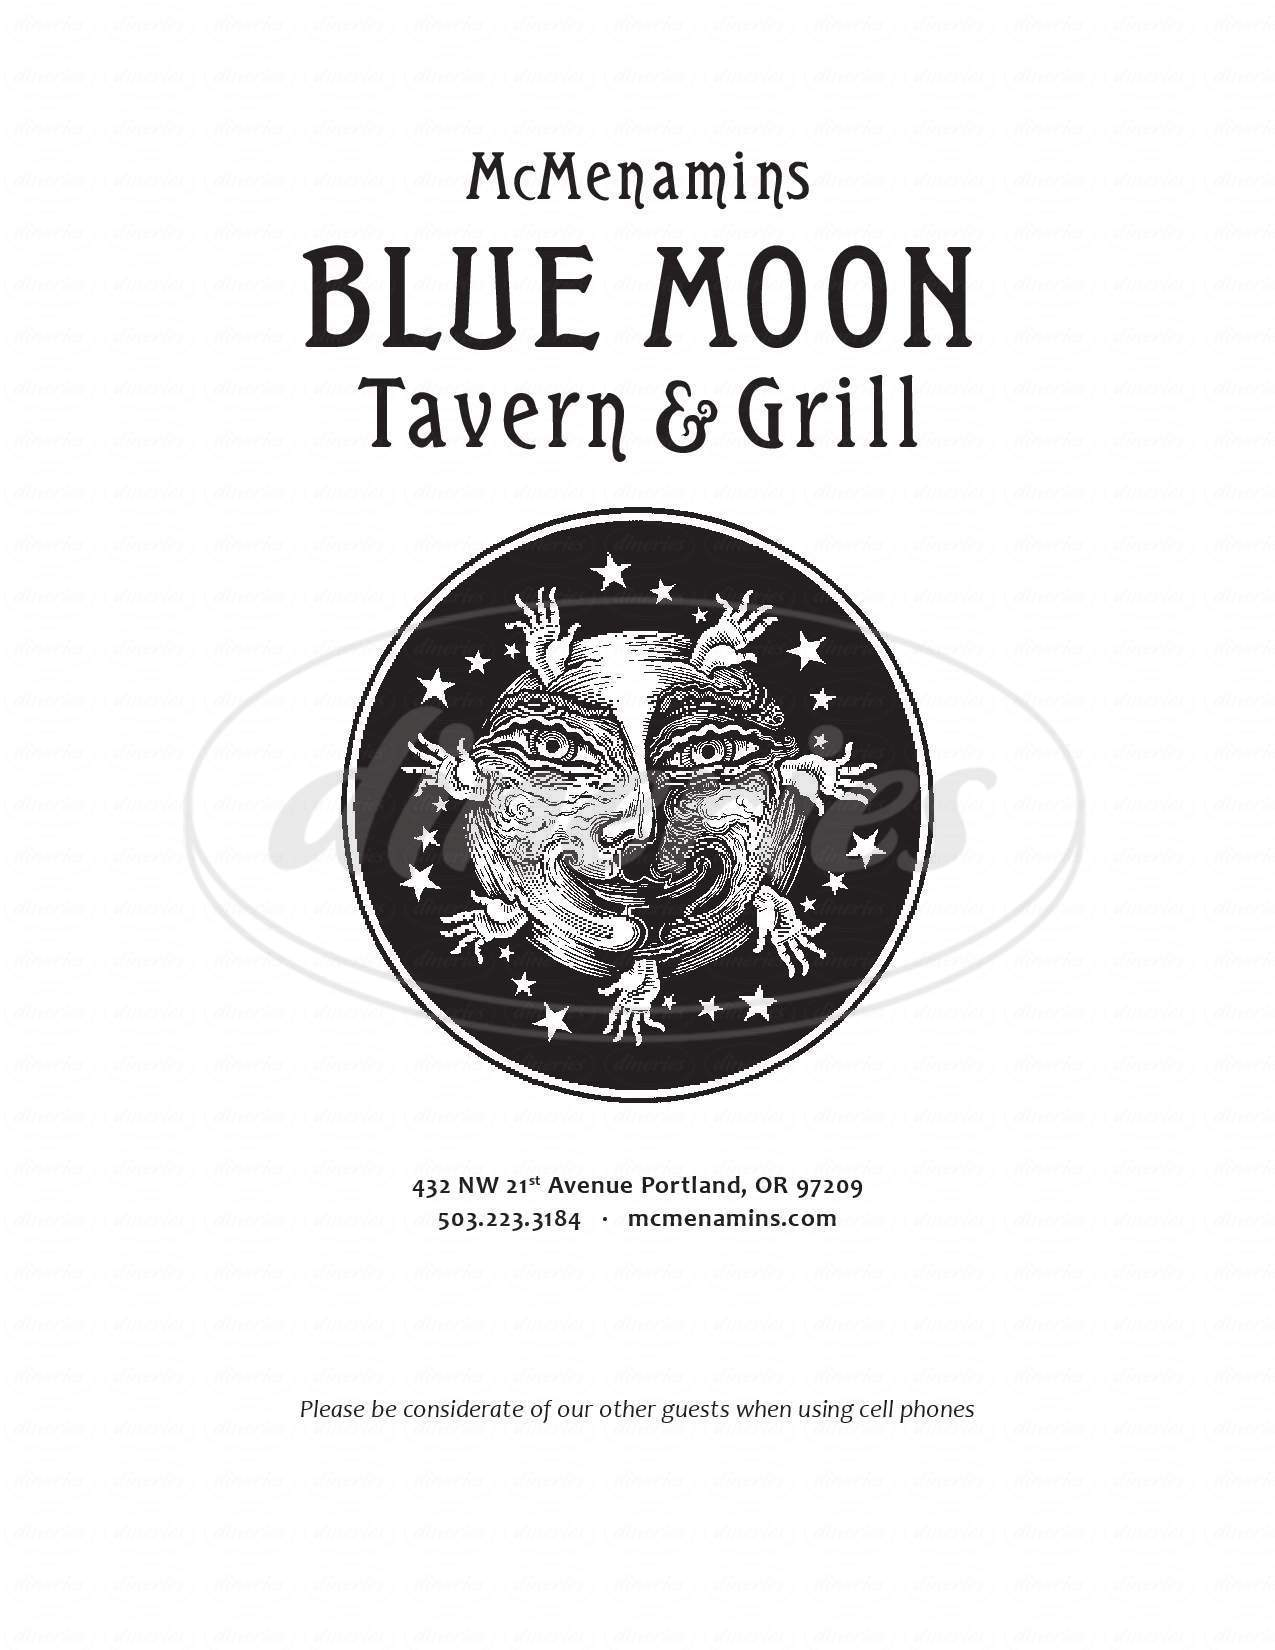 menu for McMenamins Blue Moon Tavern & Grill